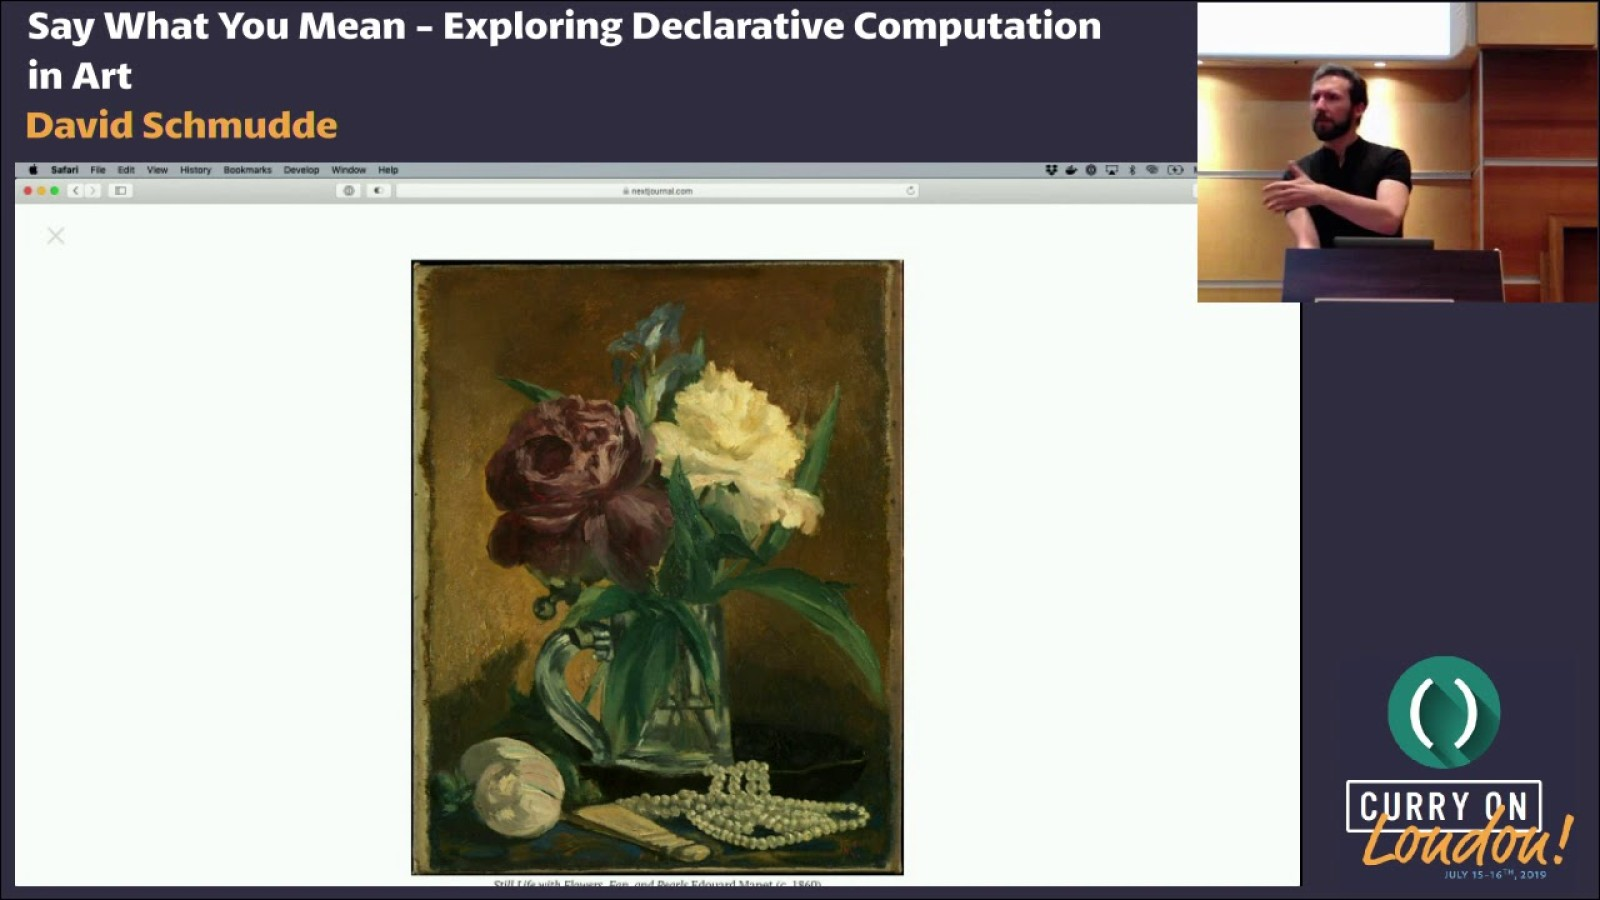 Say What You Mean: Exploring Declarative Computation in Art